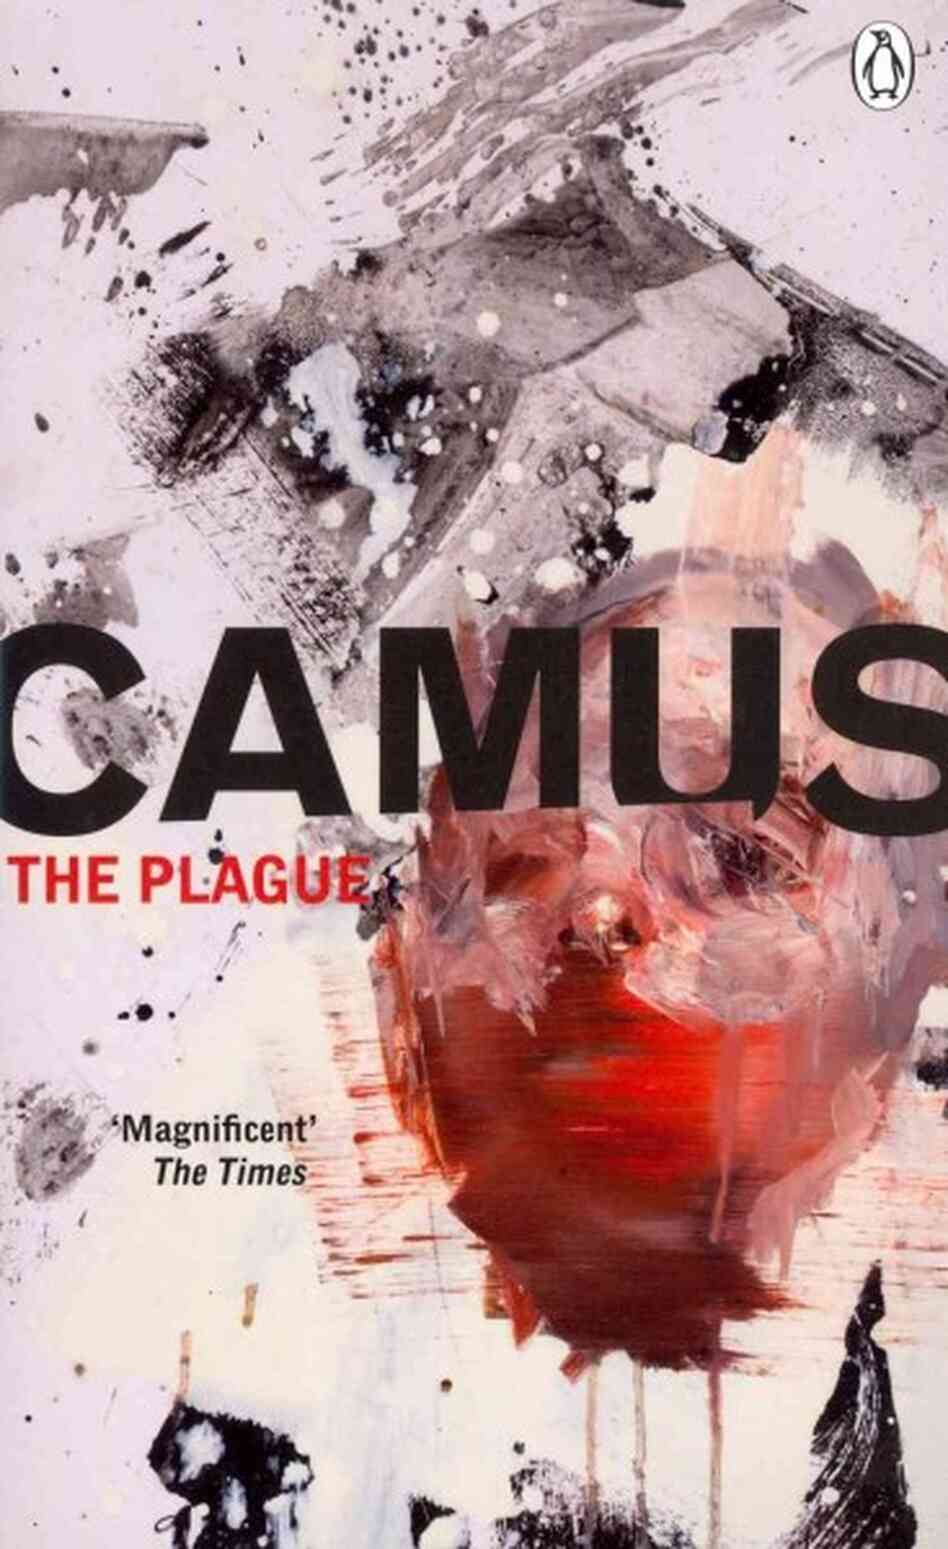 symbolism in camus the plague In order to convey this concept, many literary techniques were used, but in  particular, camus made great use of the sun and heat as symbols of belligerence  and.